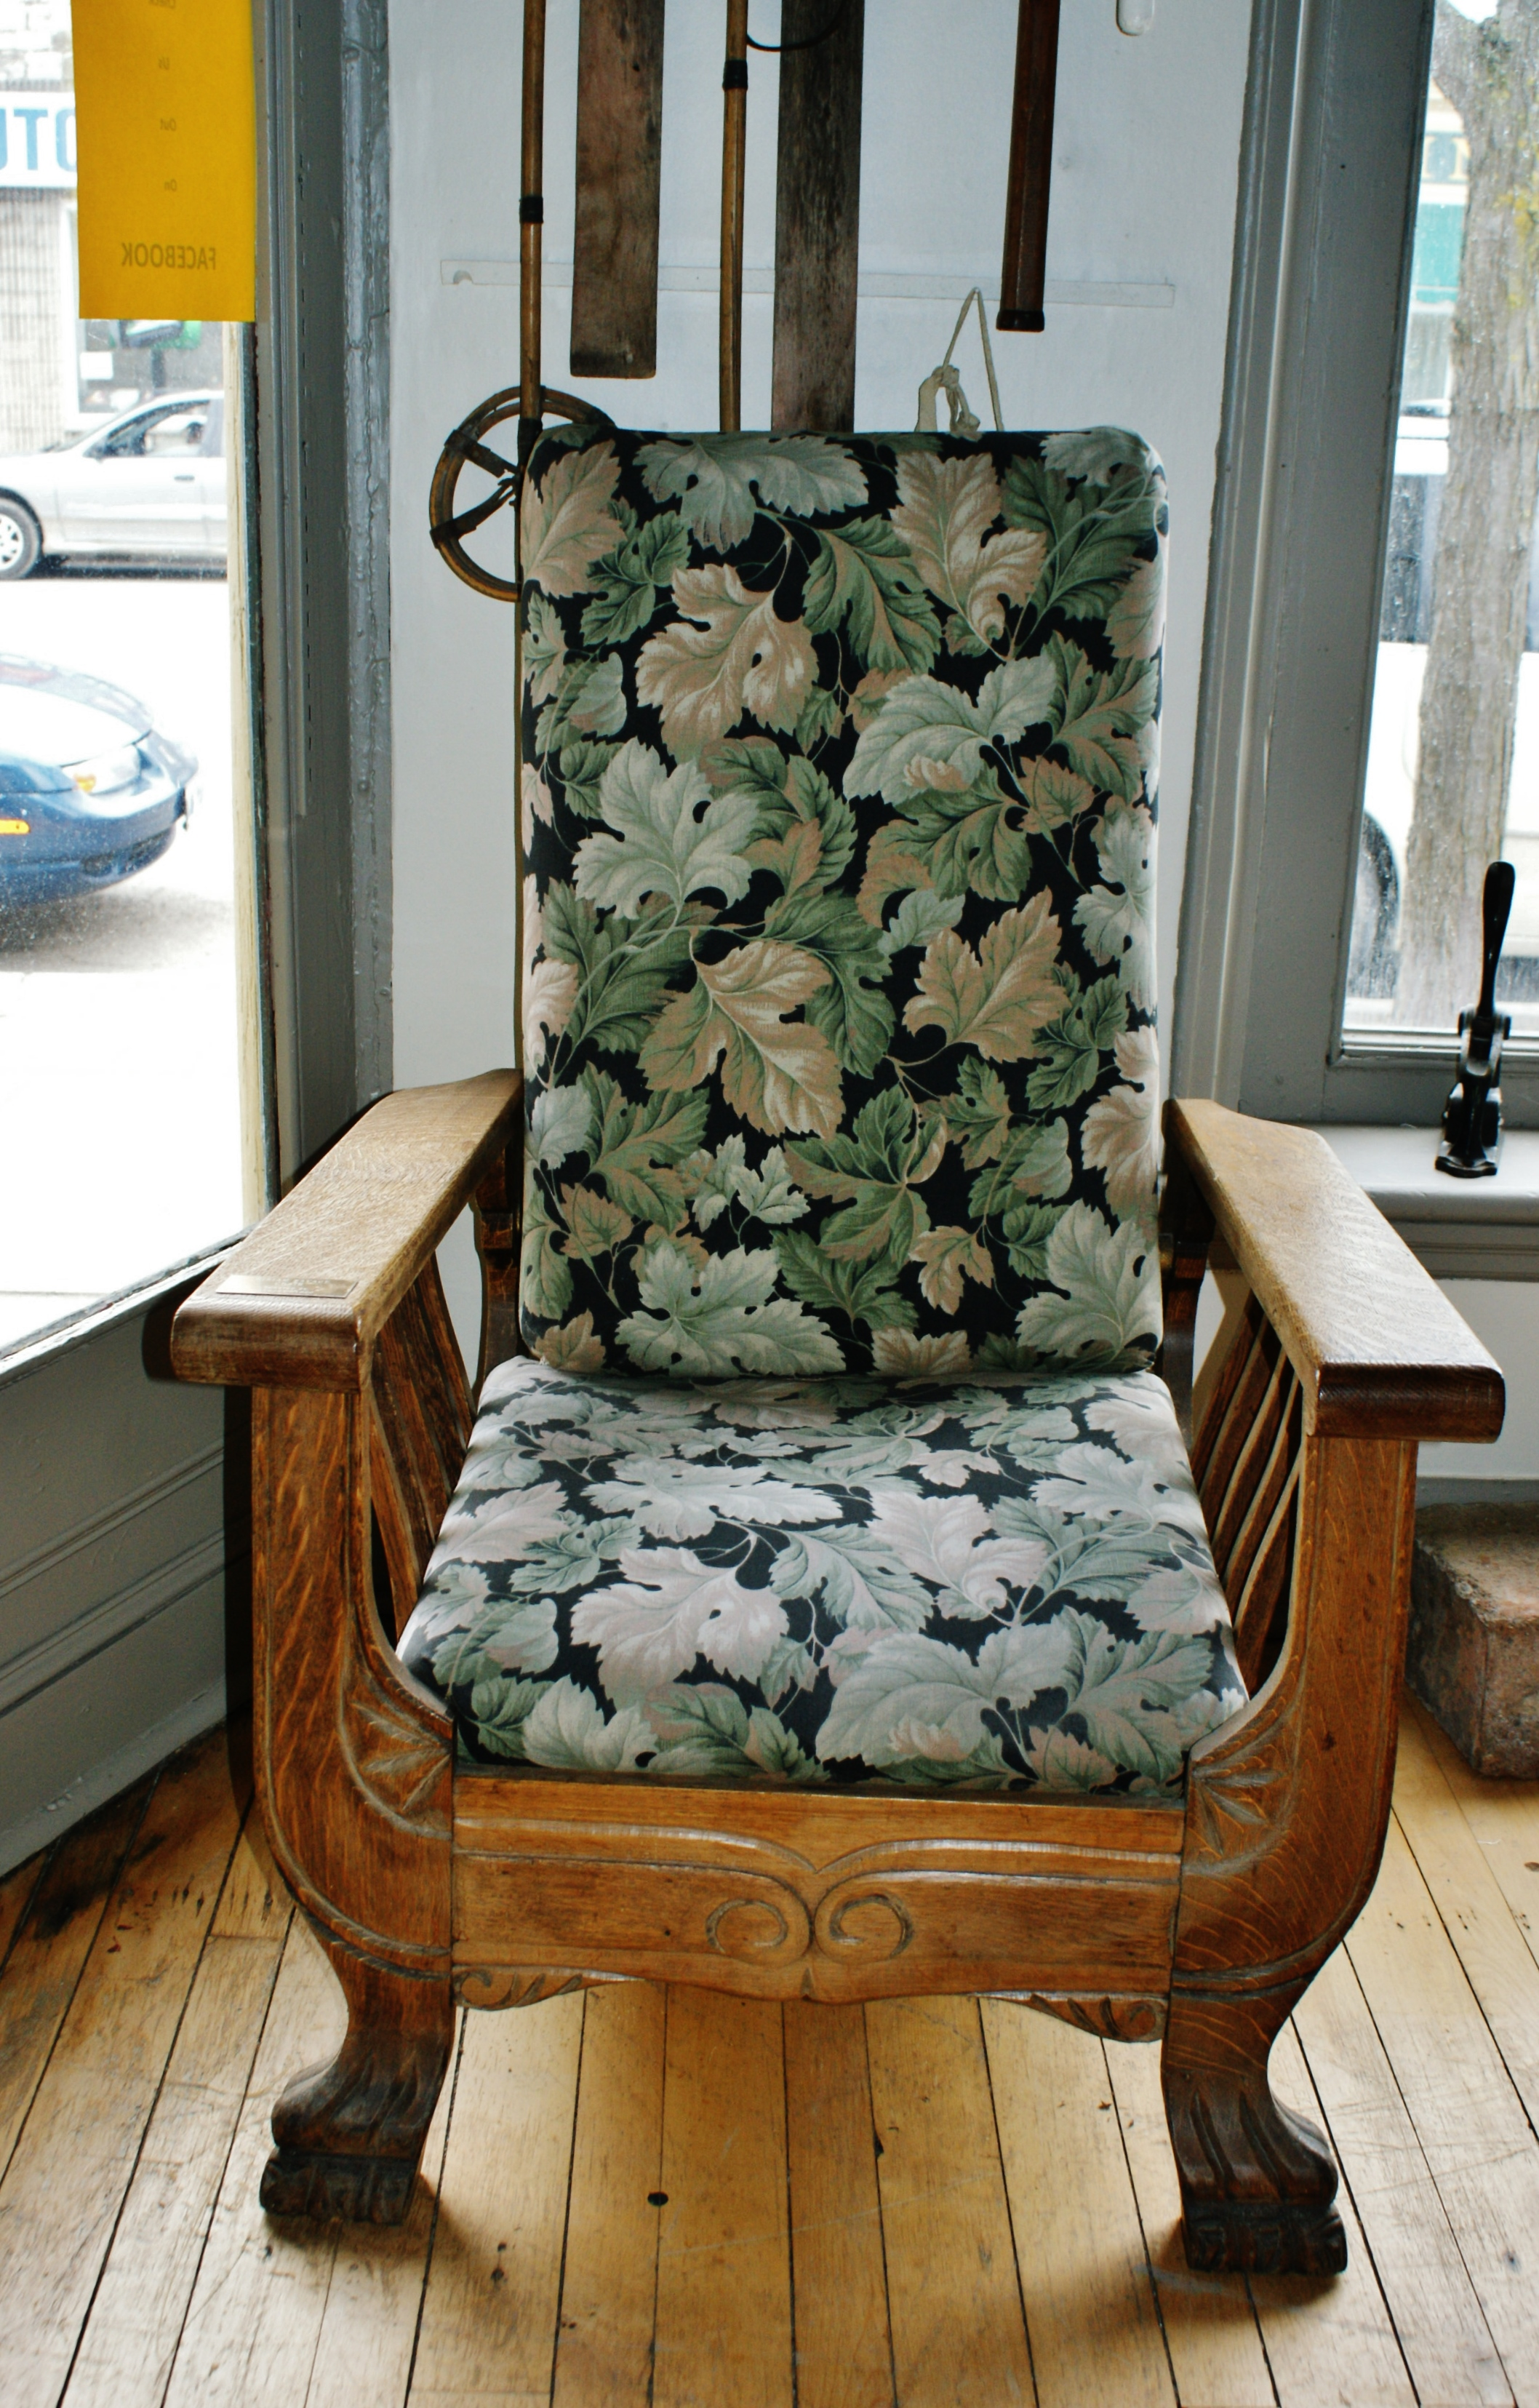 Miriam Savage's famous chair